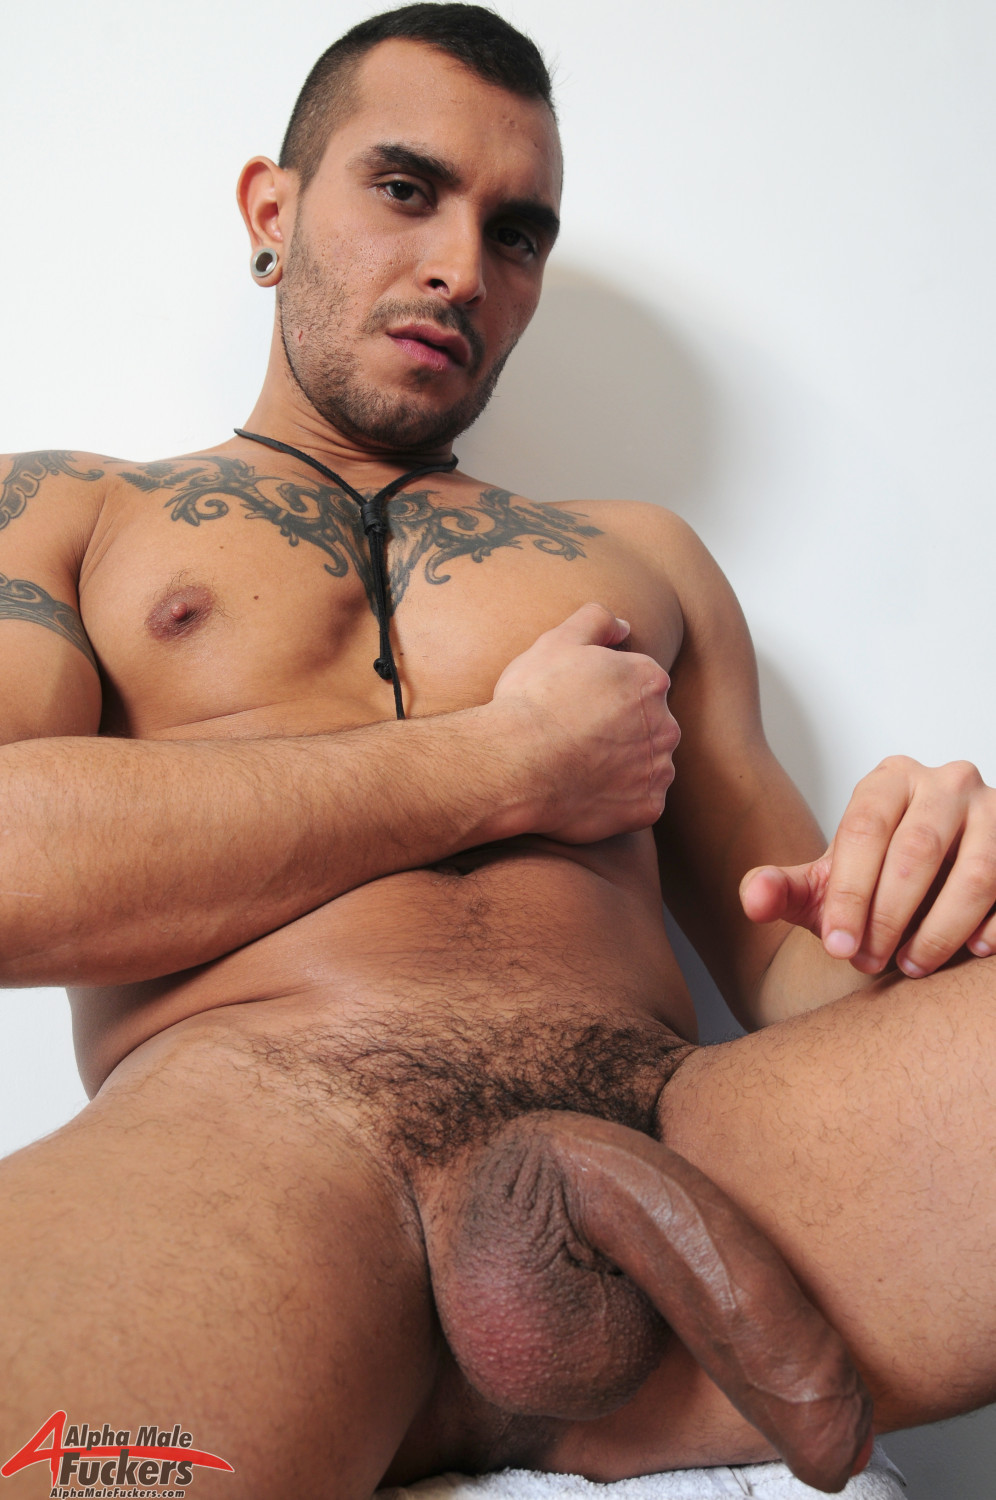 massive cock fuckers - Free big dick gay porn videos